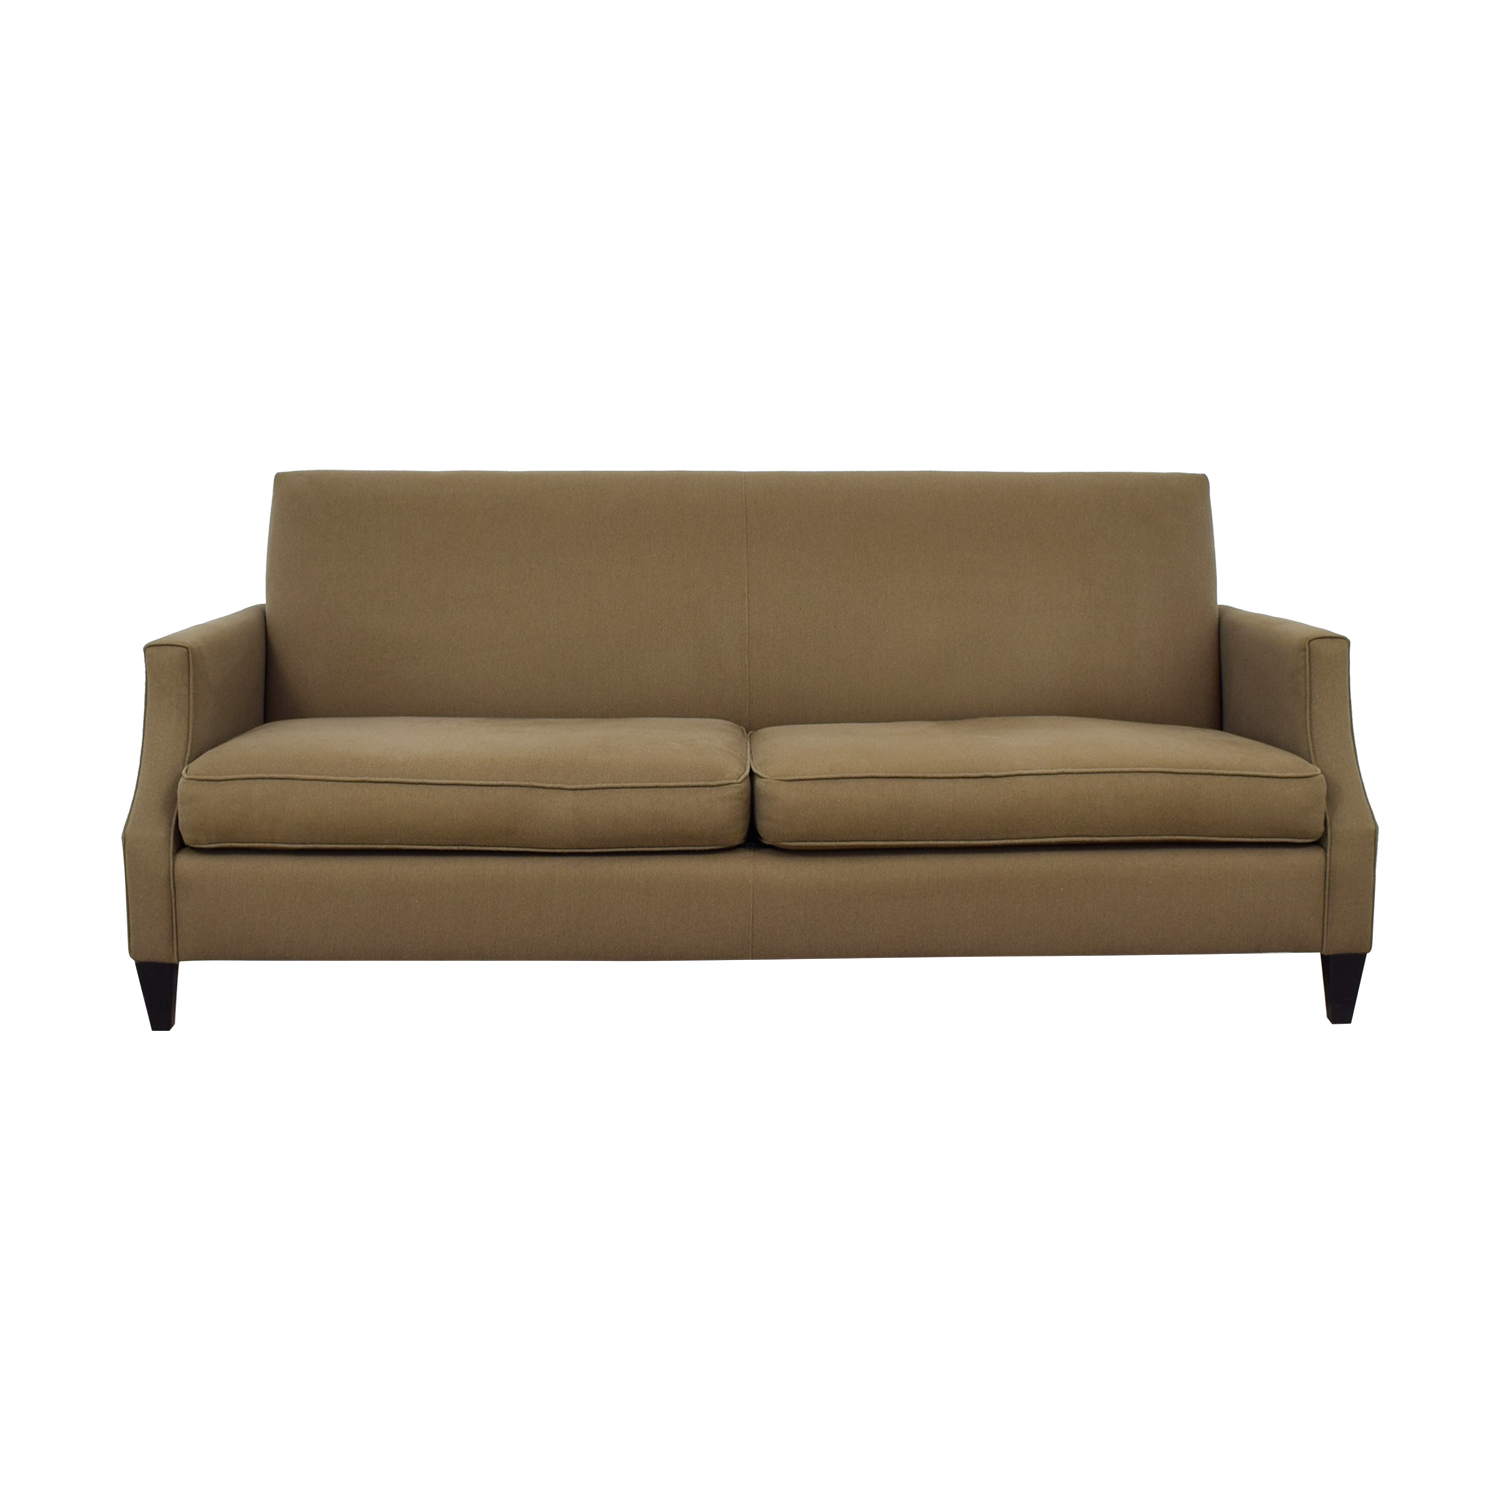 shop Crate & Barrel Grey Two-Cushion Sofa Crate and Barrel Sofas